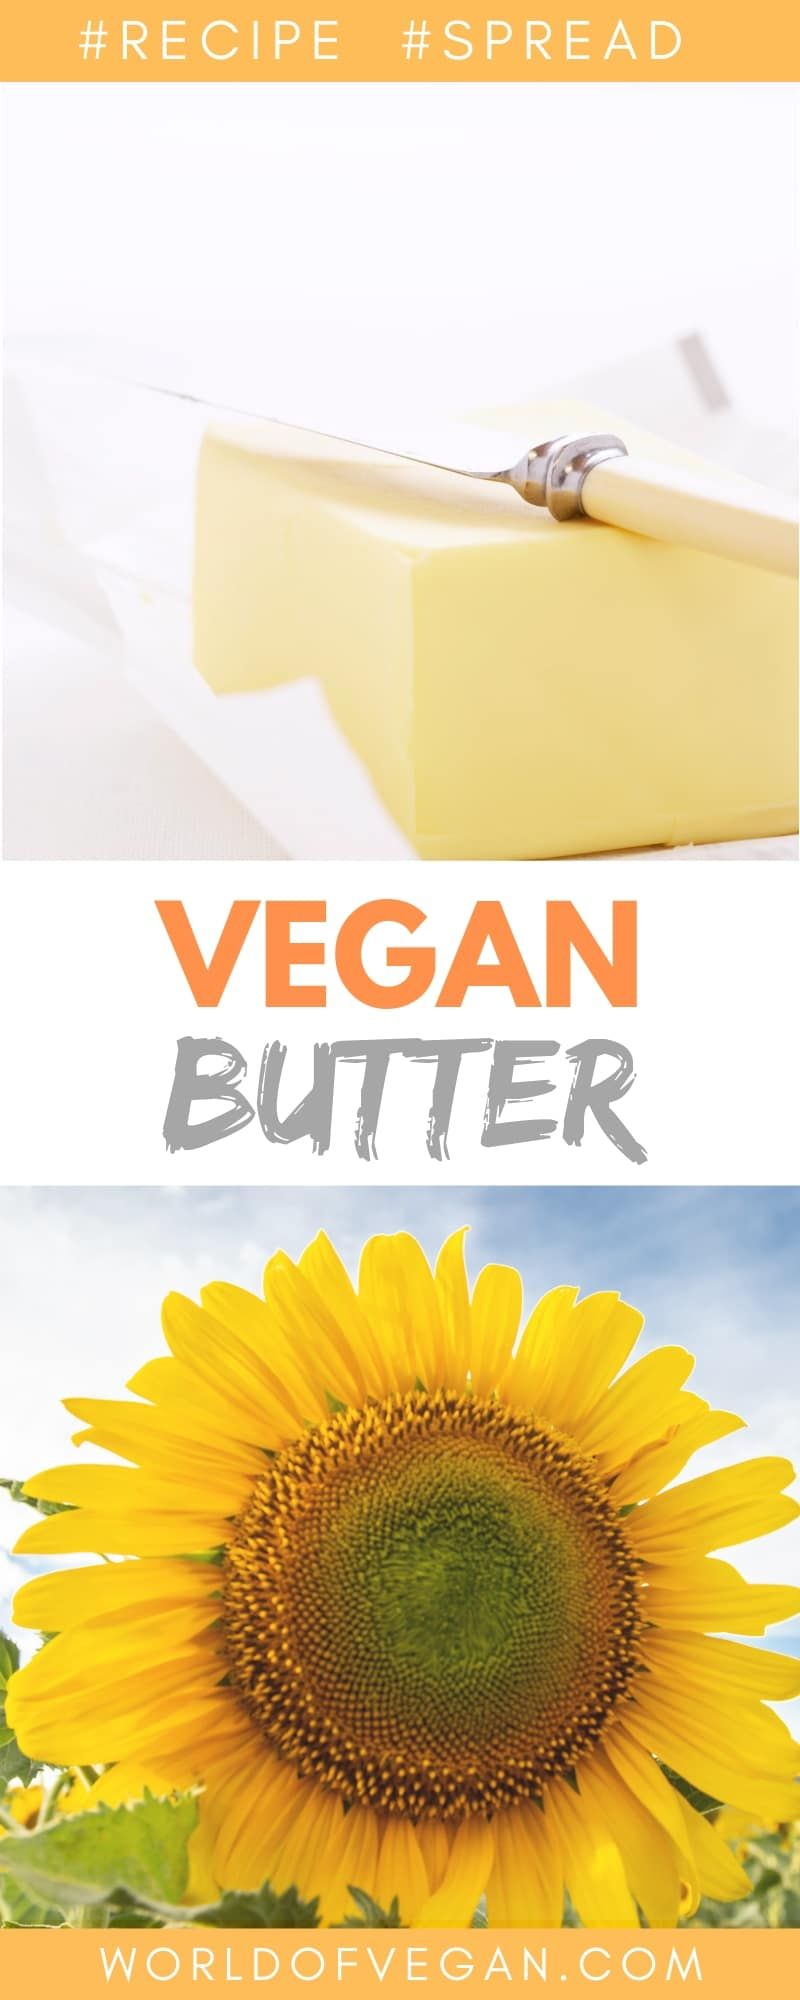 Easy Vegan Butter Recipe The Dairy Detox In 2020 Vegan Butter Butter Easy Vegan